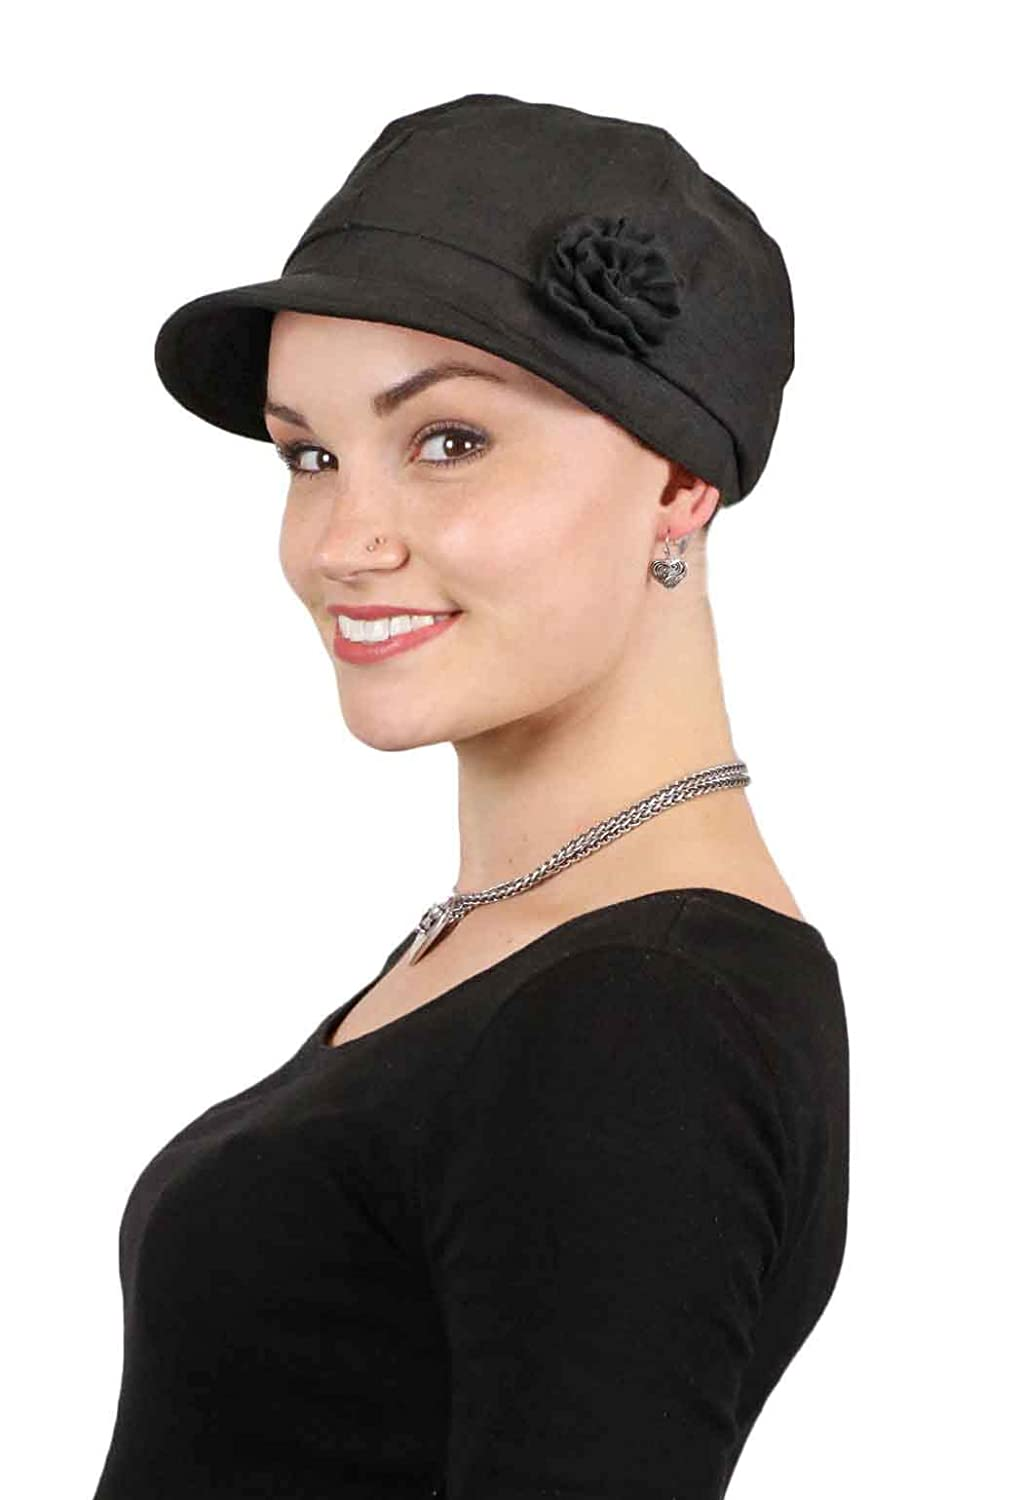 Newsboy Cap Summer Hats for Women Linen Cancer Headwear Head Coverings Hair  Loss (Black) at Amazon Women s Clothing store  79e6bc6b54b